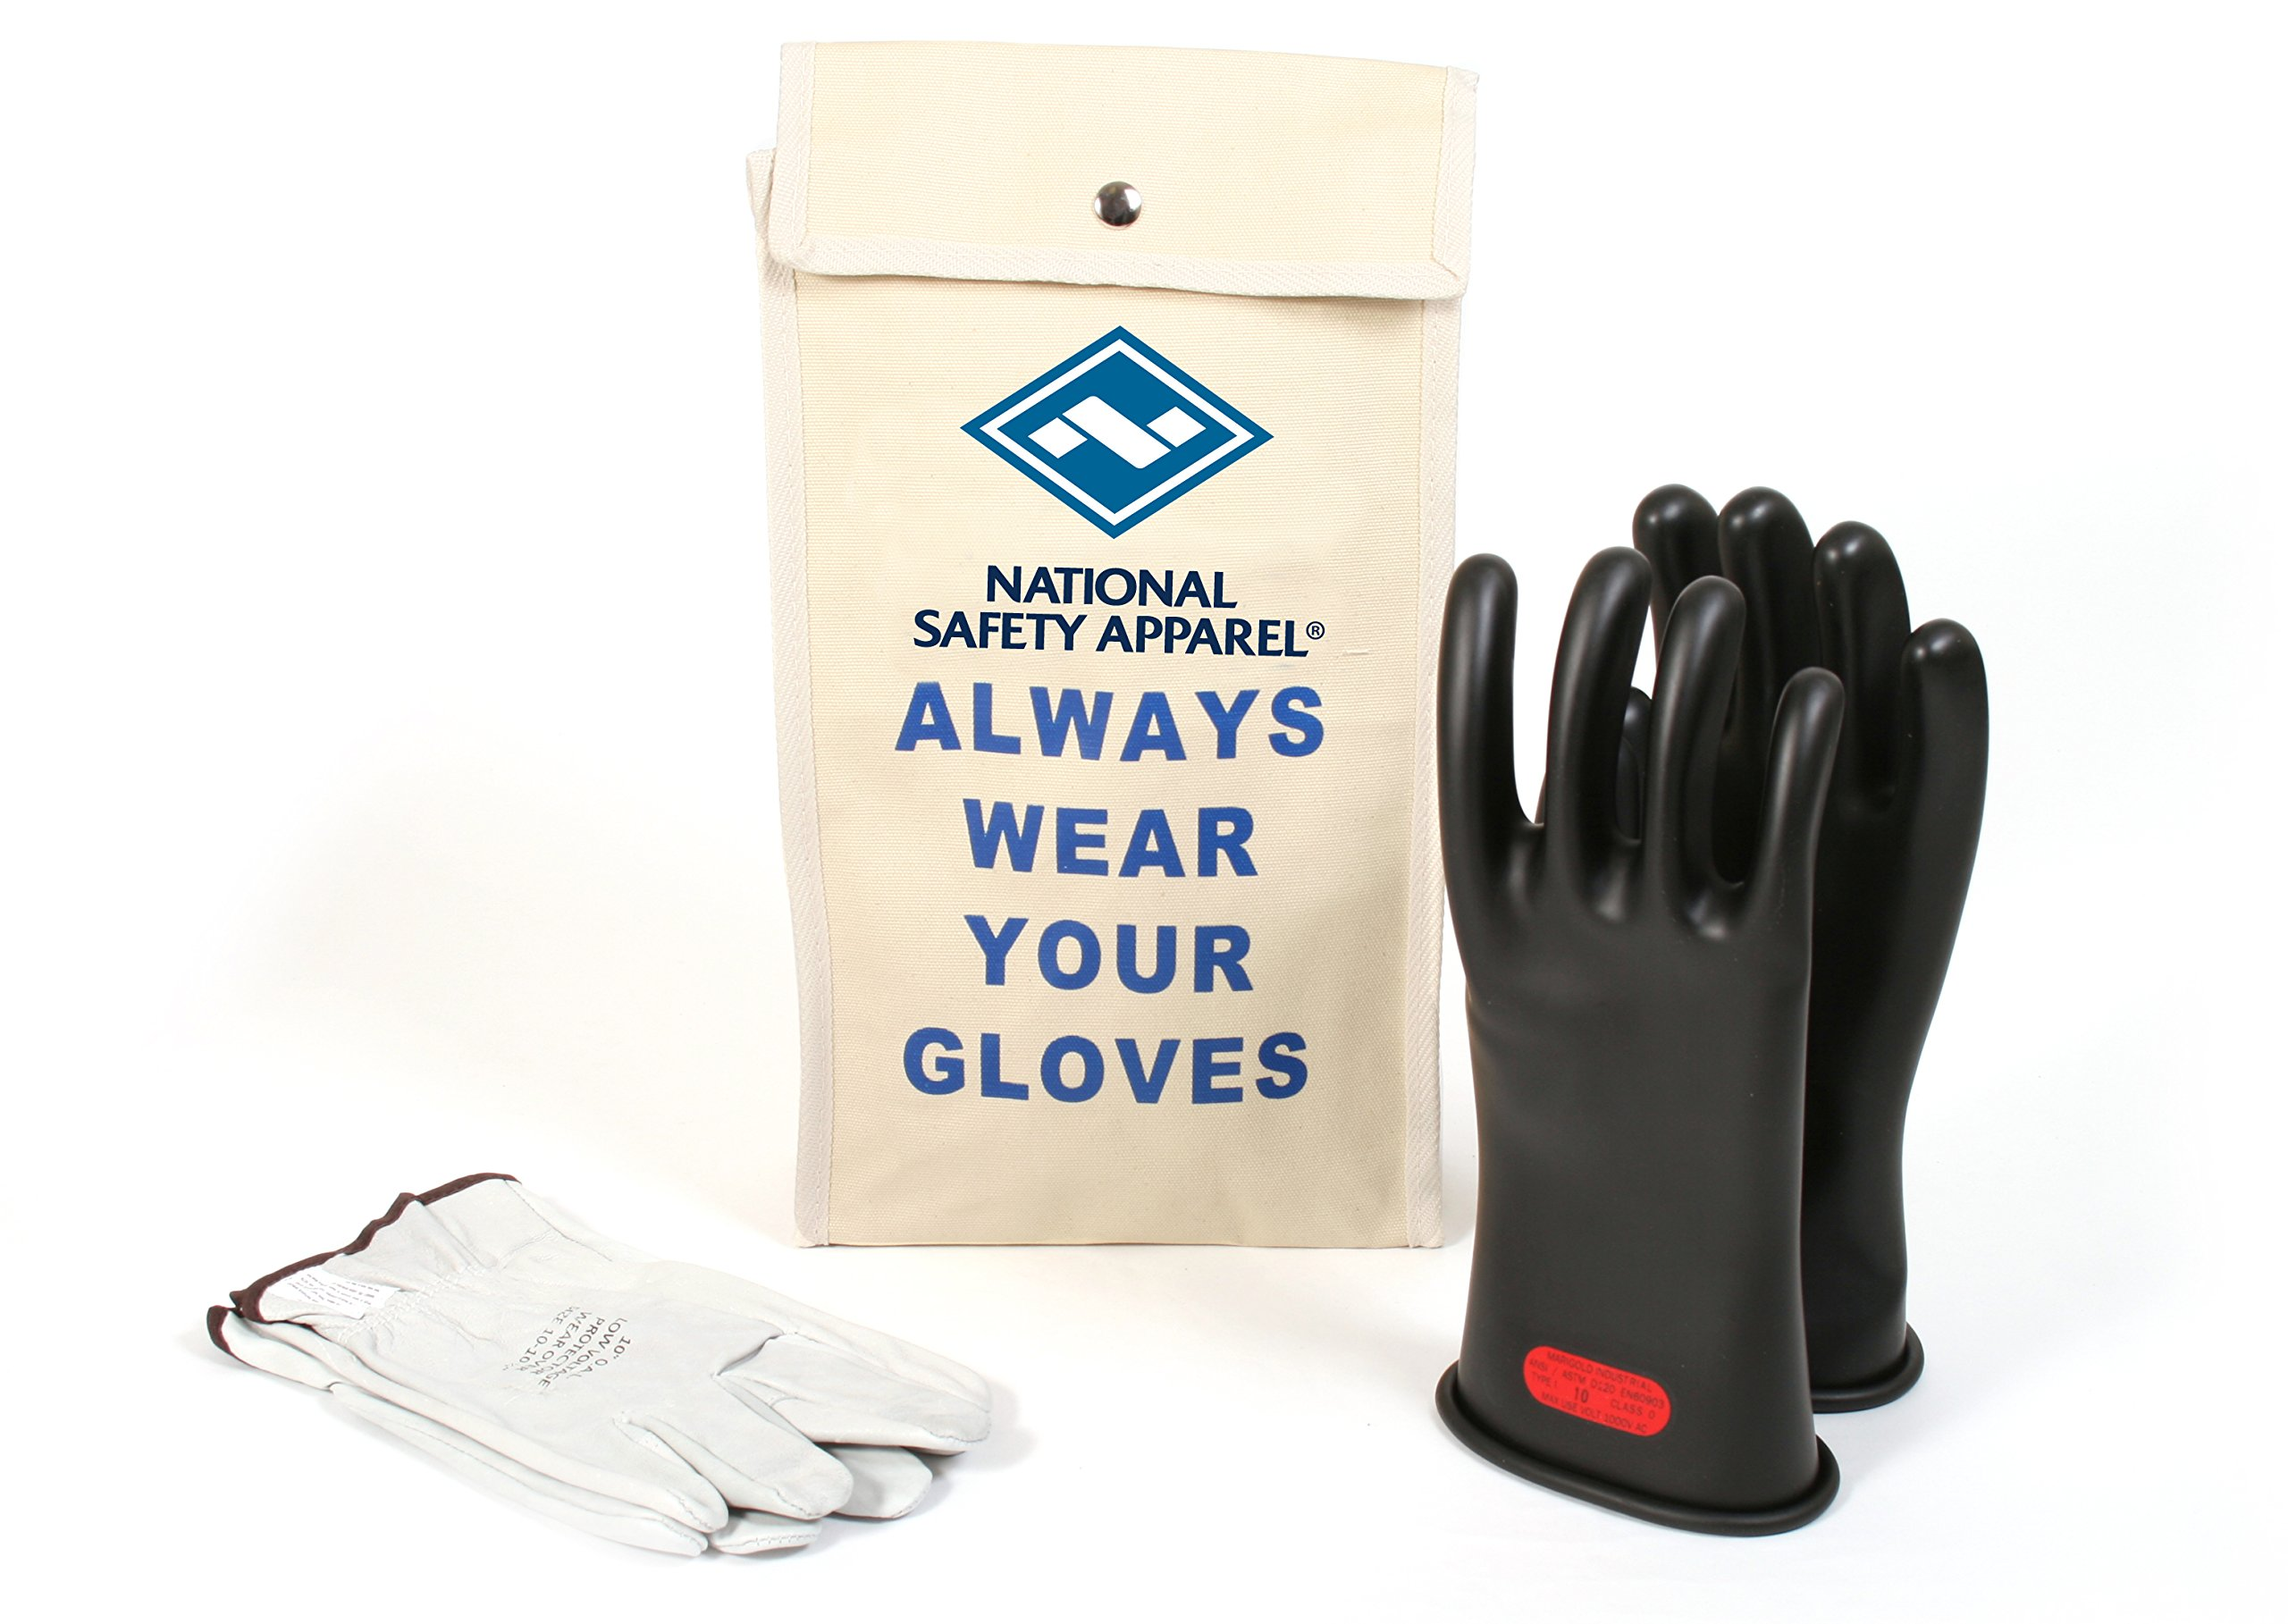 National Safety Apparel Class 0 Black Rubber Voltage Insulating Glove Kit with Leather Protectors, Max. Use Voltage 1,000V AC/ 1,500V DC (KITGC011)